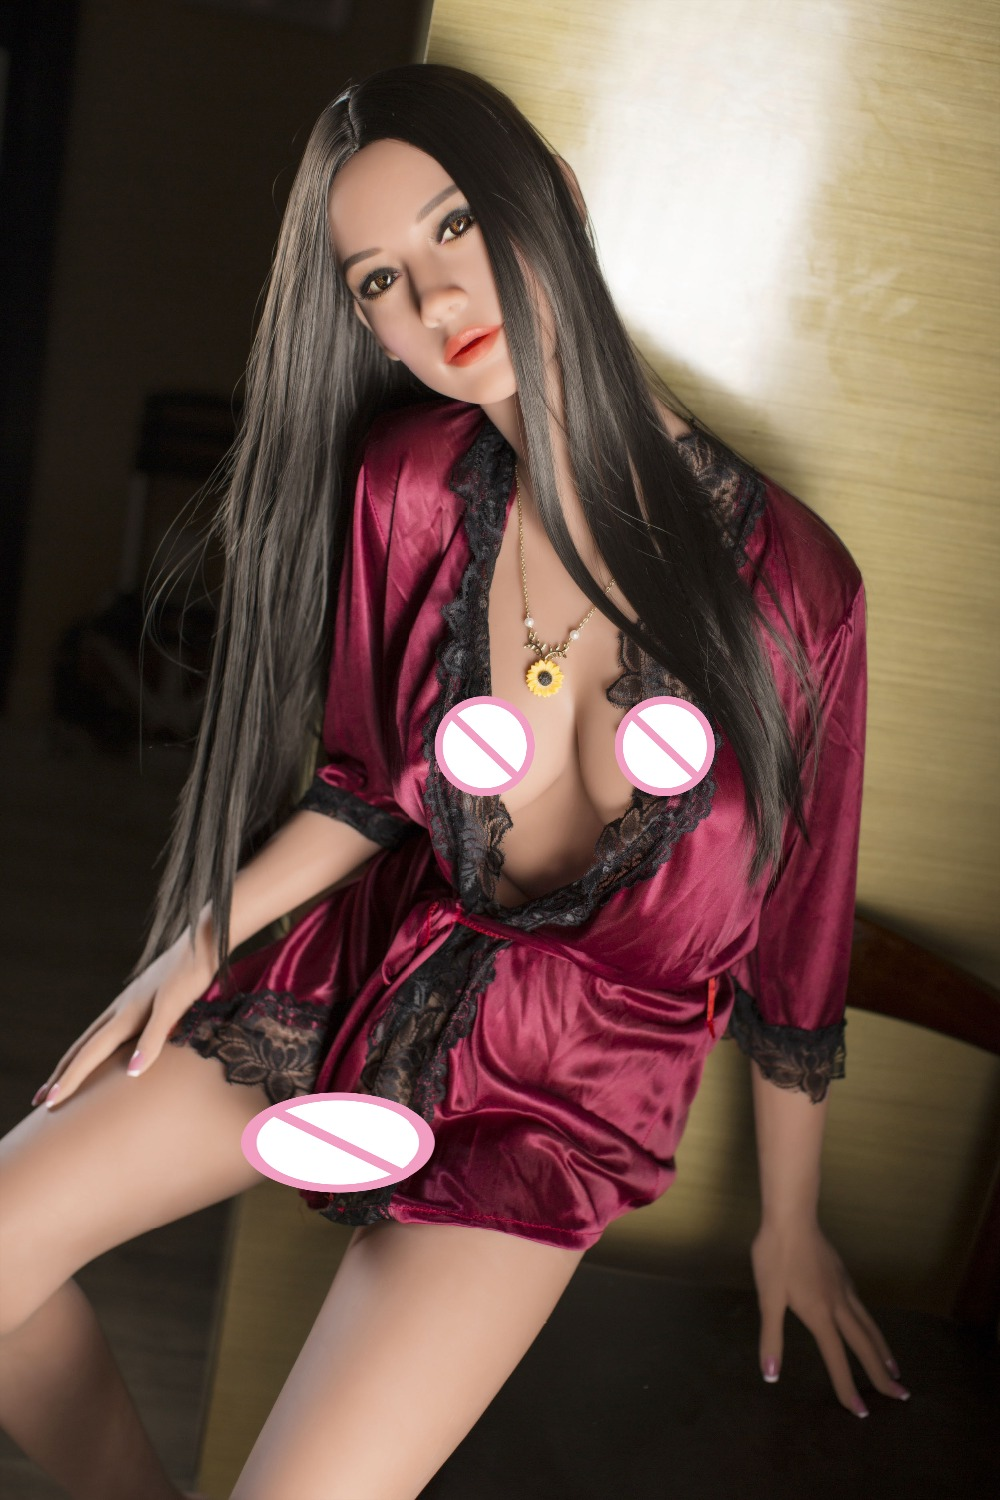 NEW 163cm Sex Doll Big Breast American European Face Sexy Lifelike Silicone Sex Dolls Shemale with Penis Dildo Men WomenNEW 163cm Sex Doll Big Breast American European Face Sexy Lifelike Silicone Sex Dolls Shemale with Penis Dildo Men Women